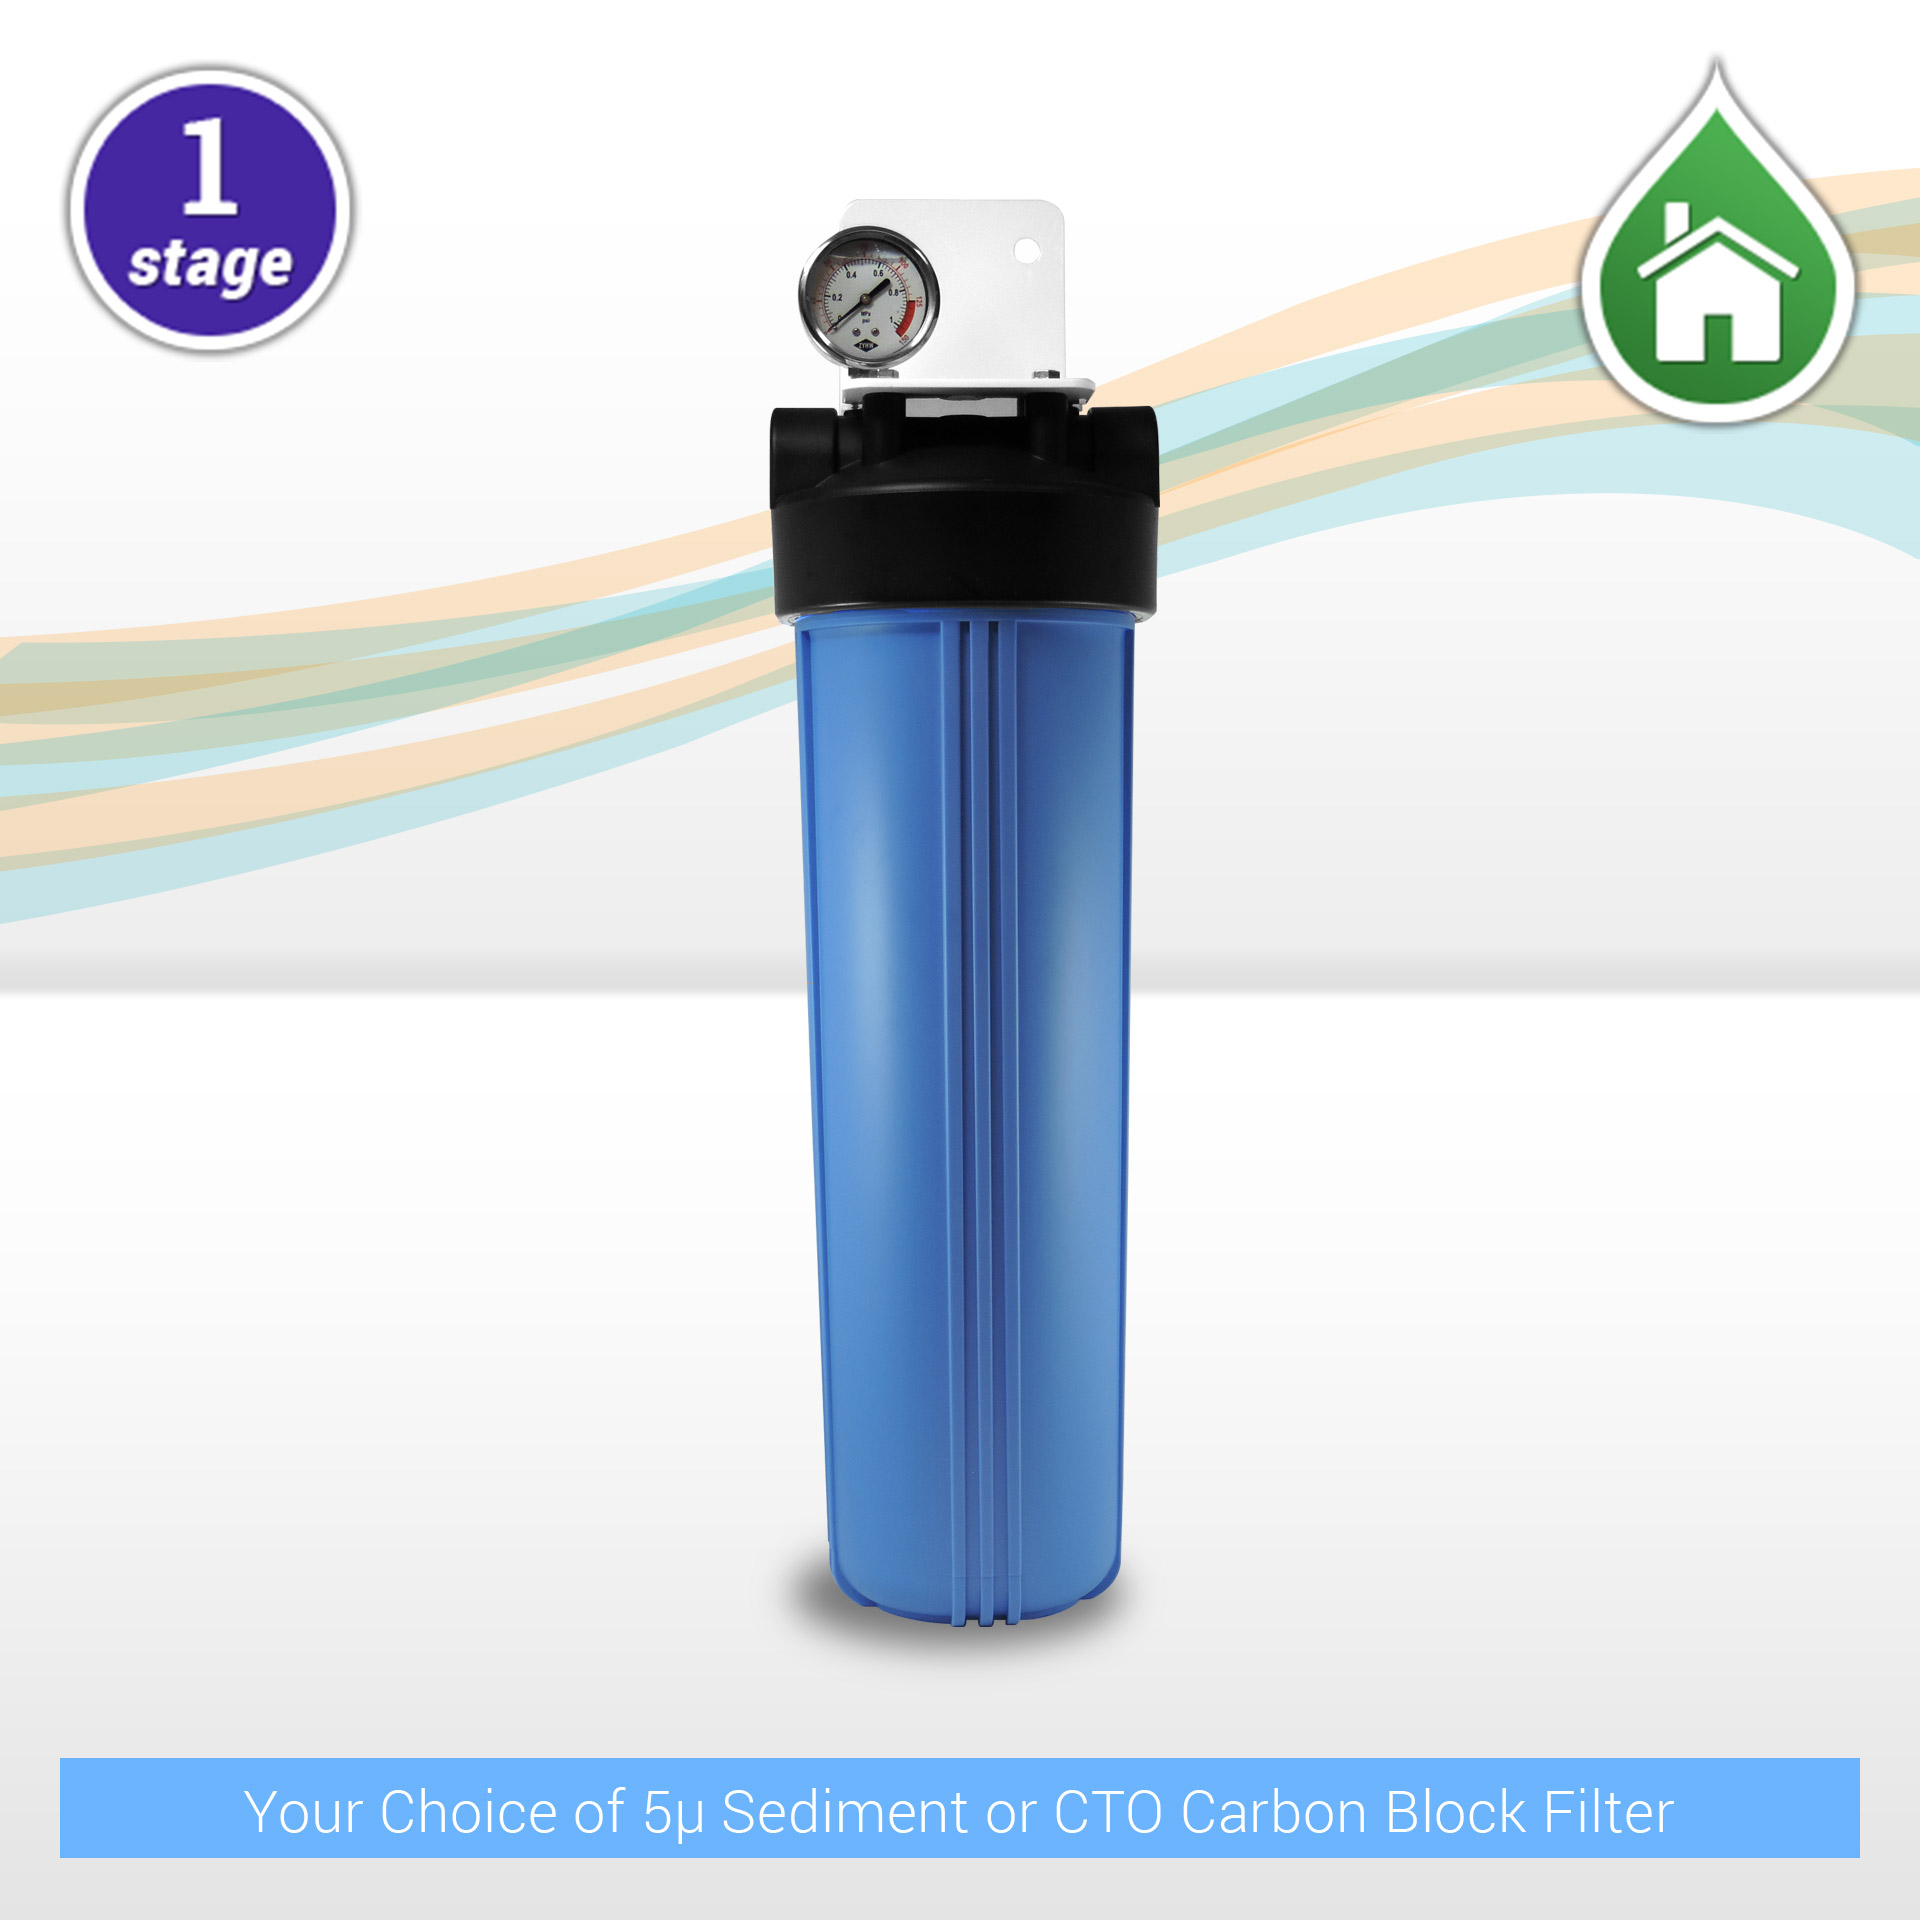 1 Stage 20 Quot X 4 5 Quot Big Blue Water Filtration System With